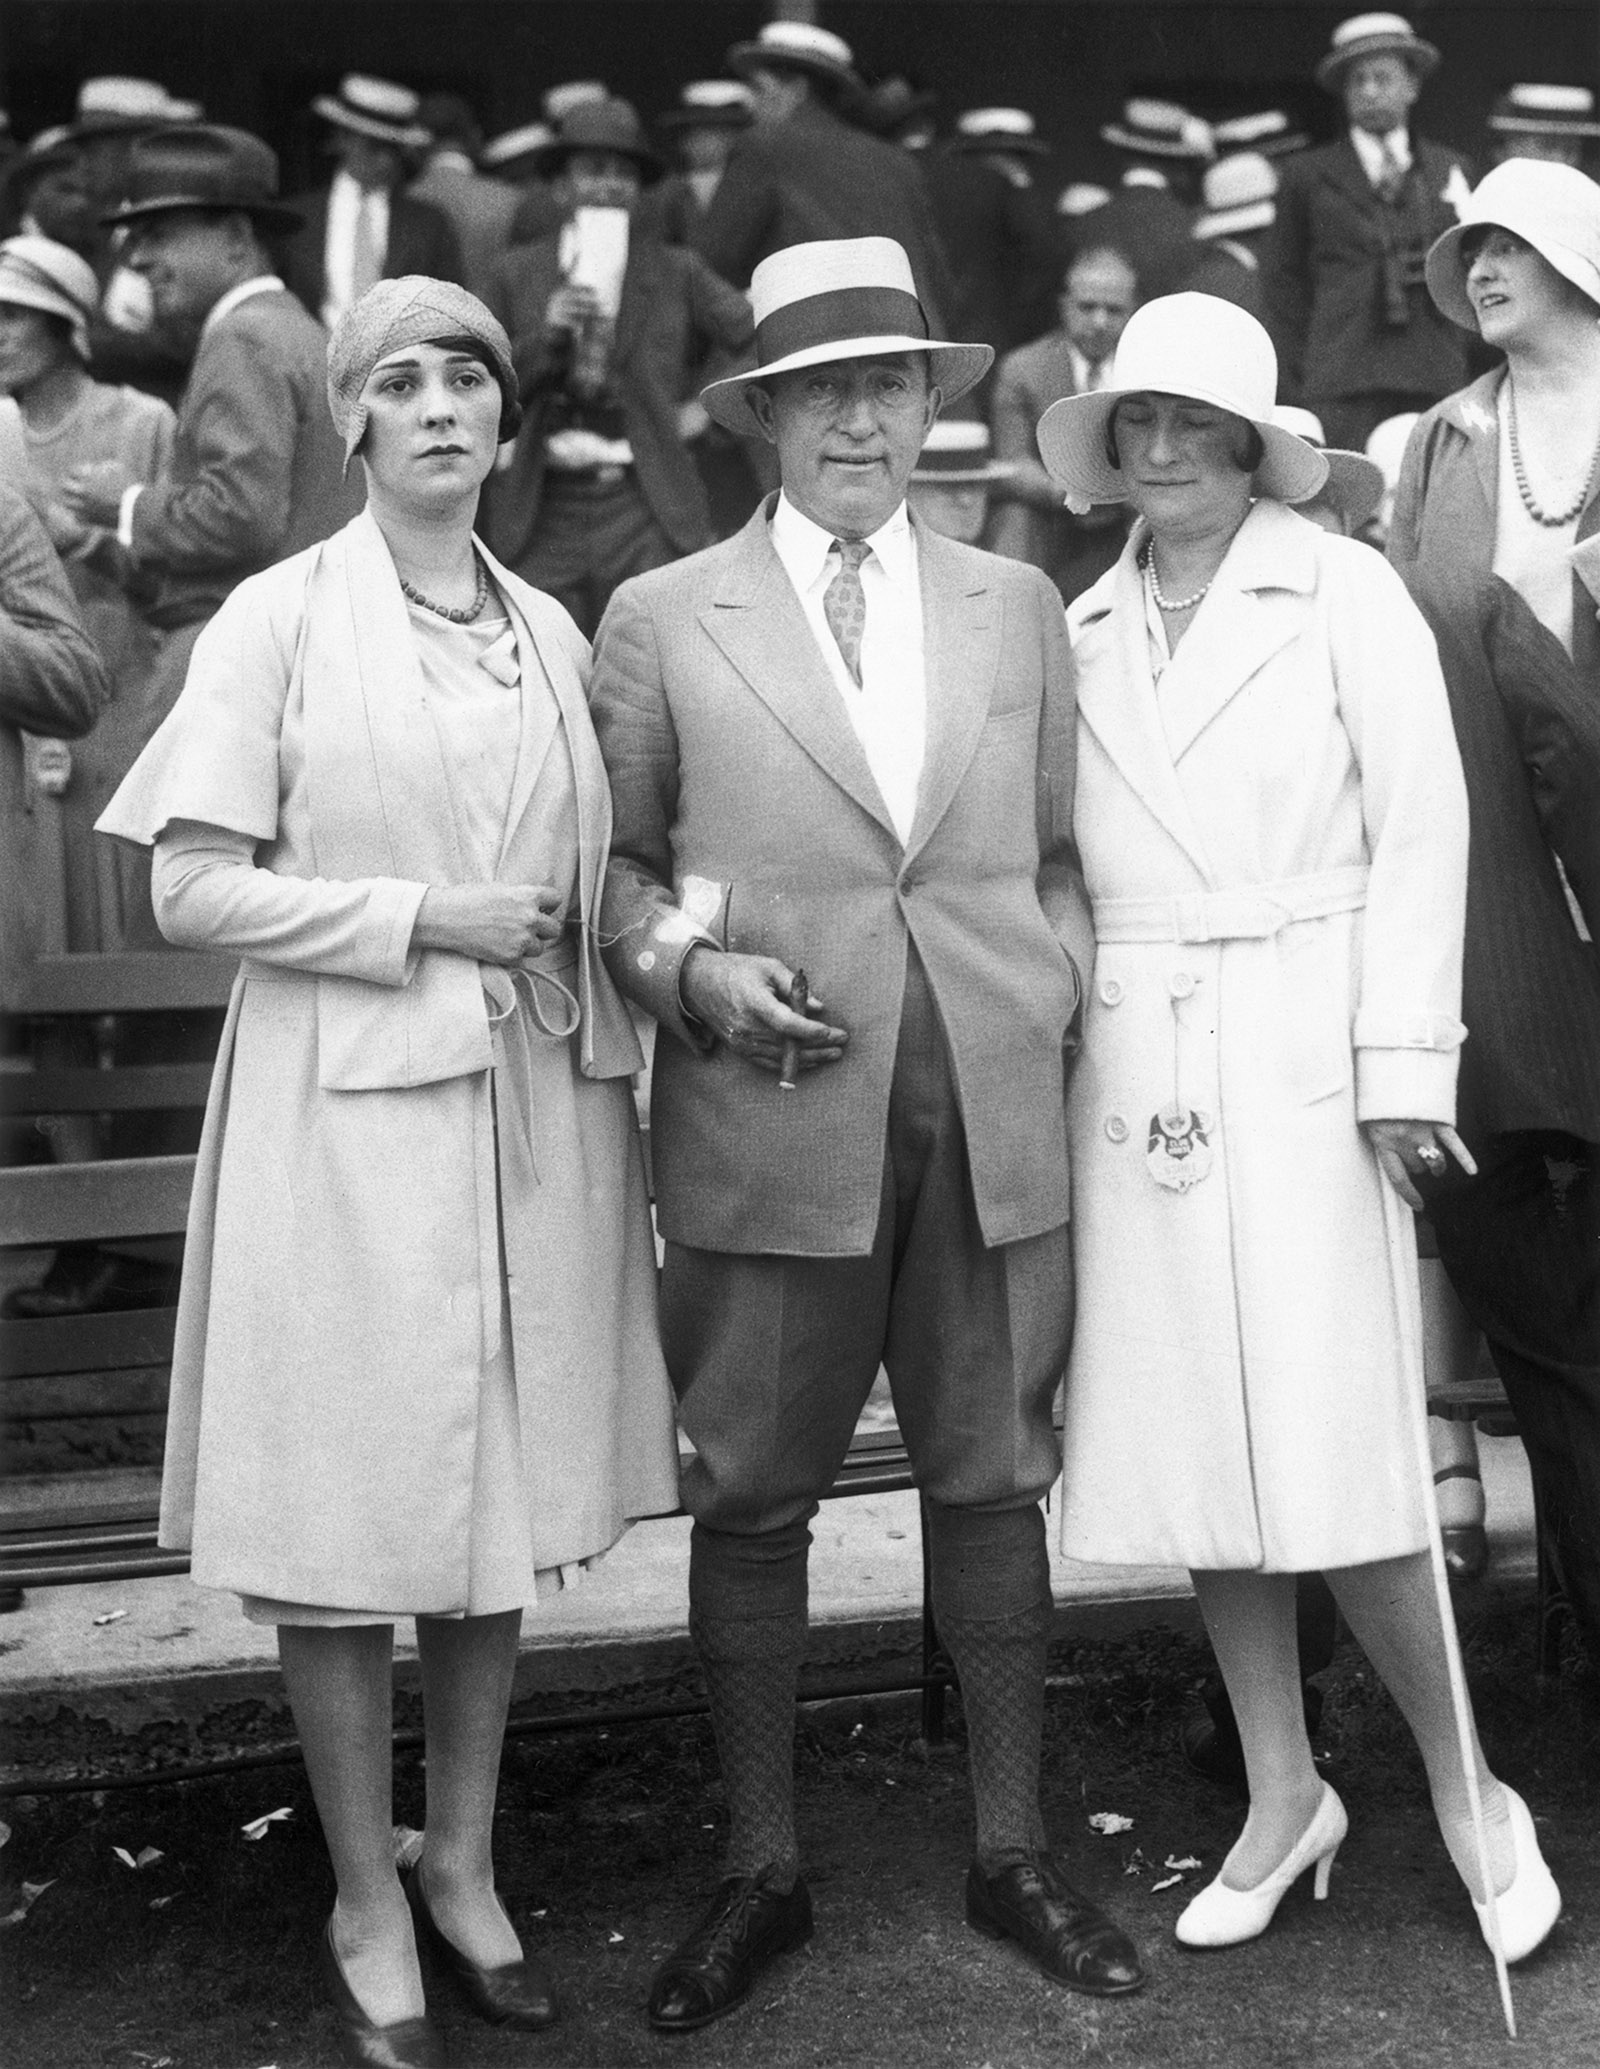 William Fox with his wife, Eva, and one of his daughters, 1920s